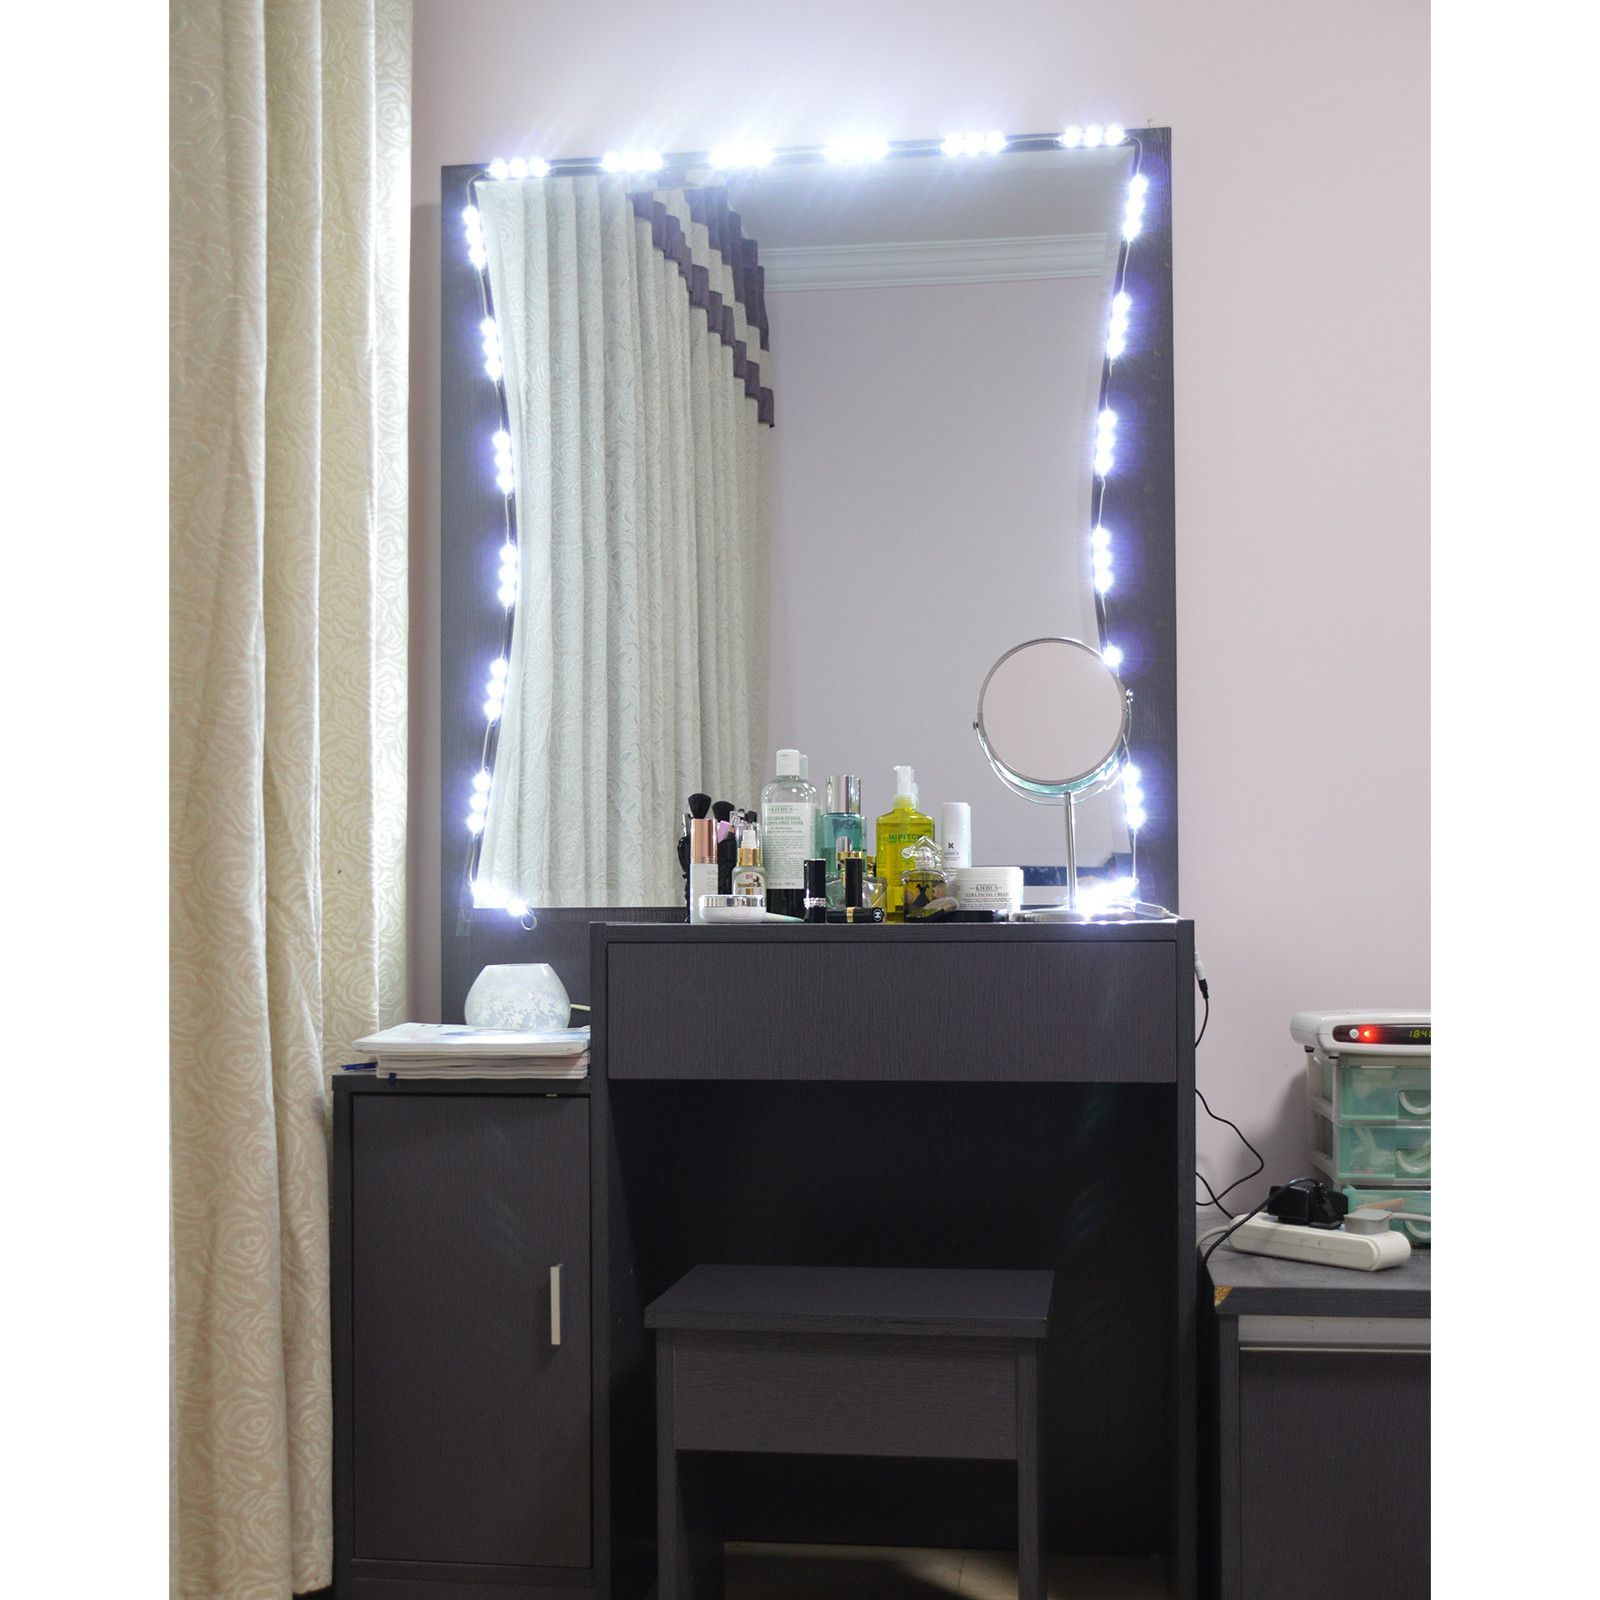 10 FT Lighted Mirror LED Light for Cosmetic Makeup Vanity Mirror Kit